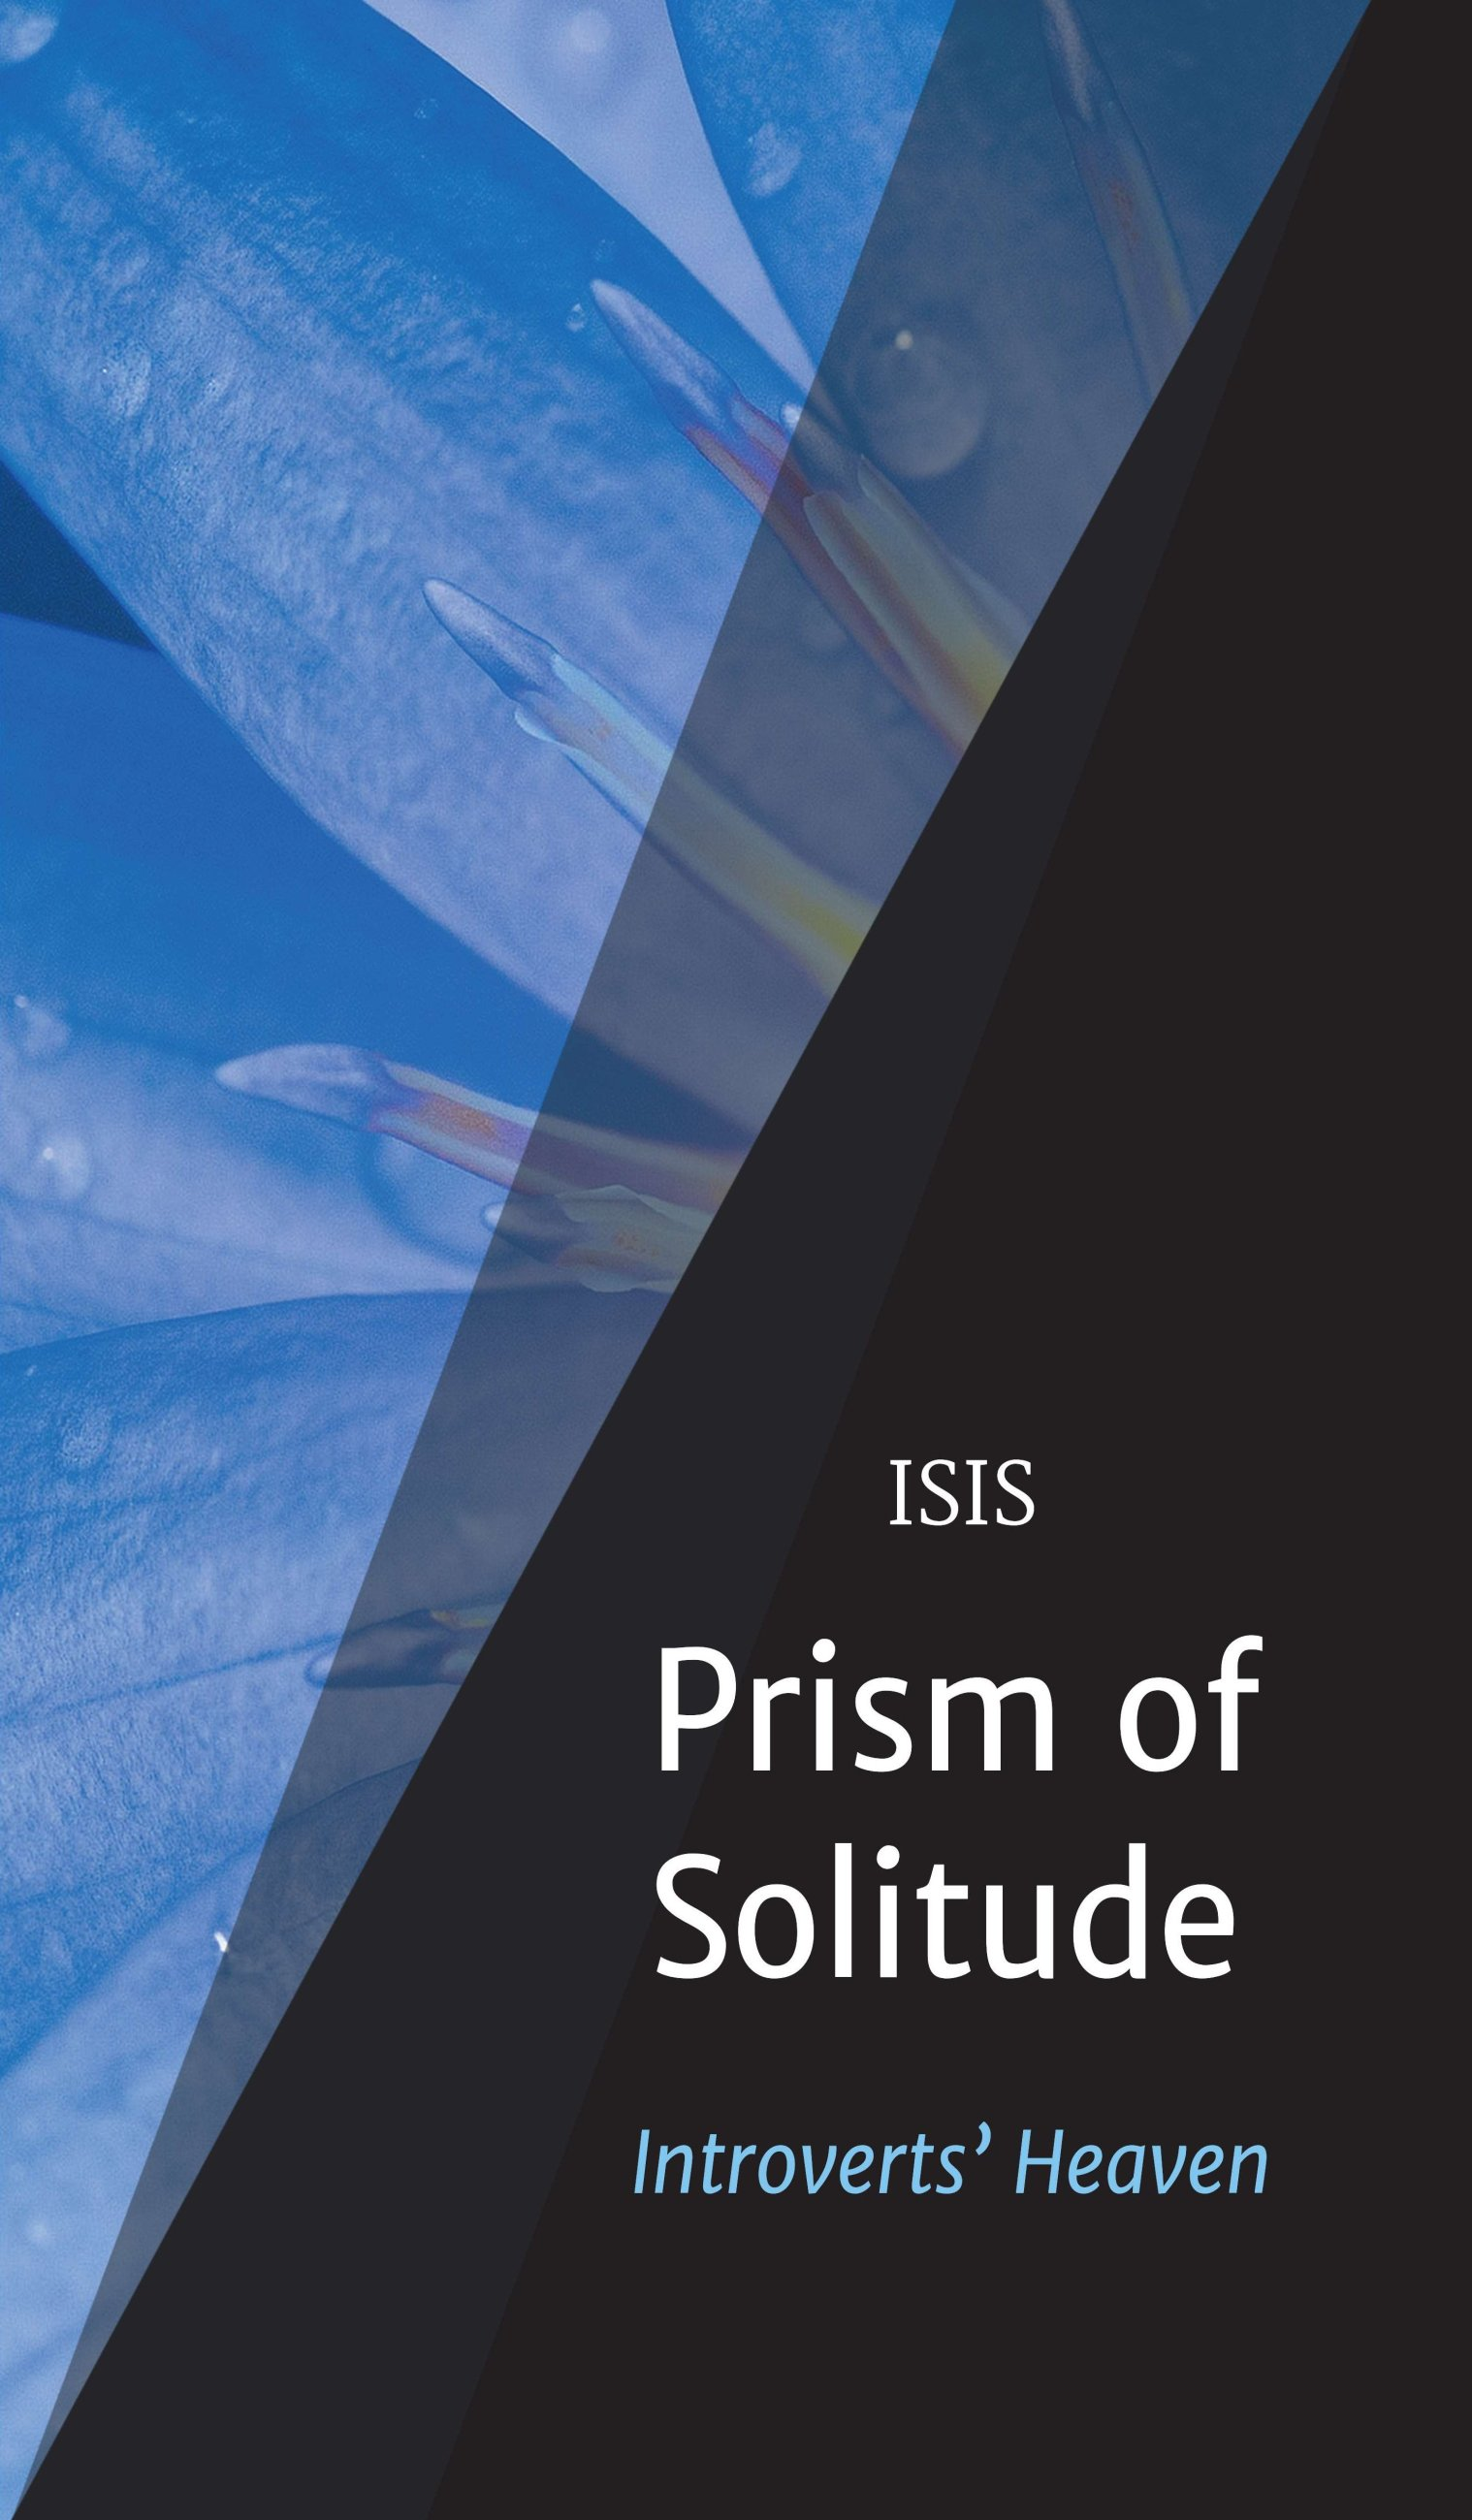 Prism of Solitude - Personal experiences of a family of introverts